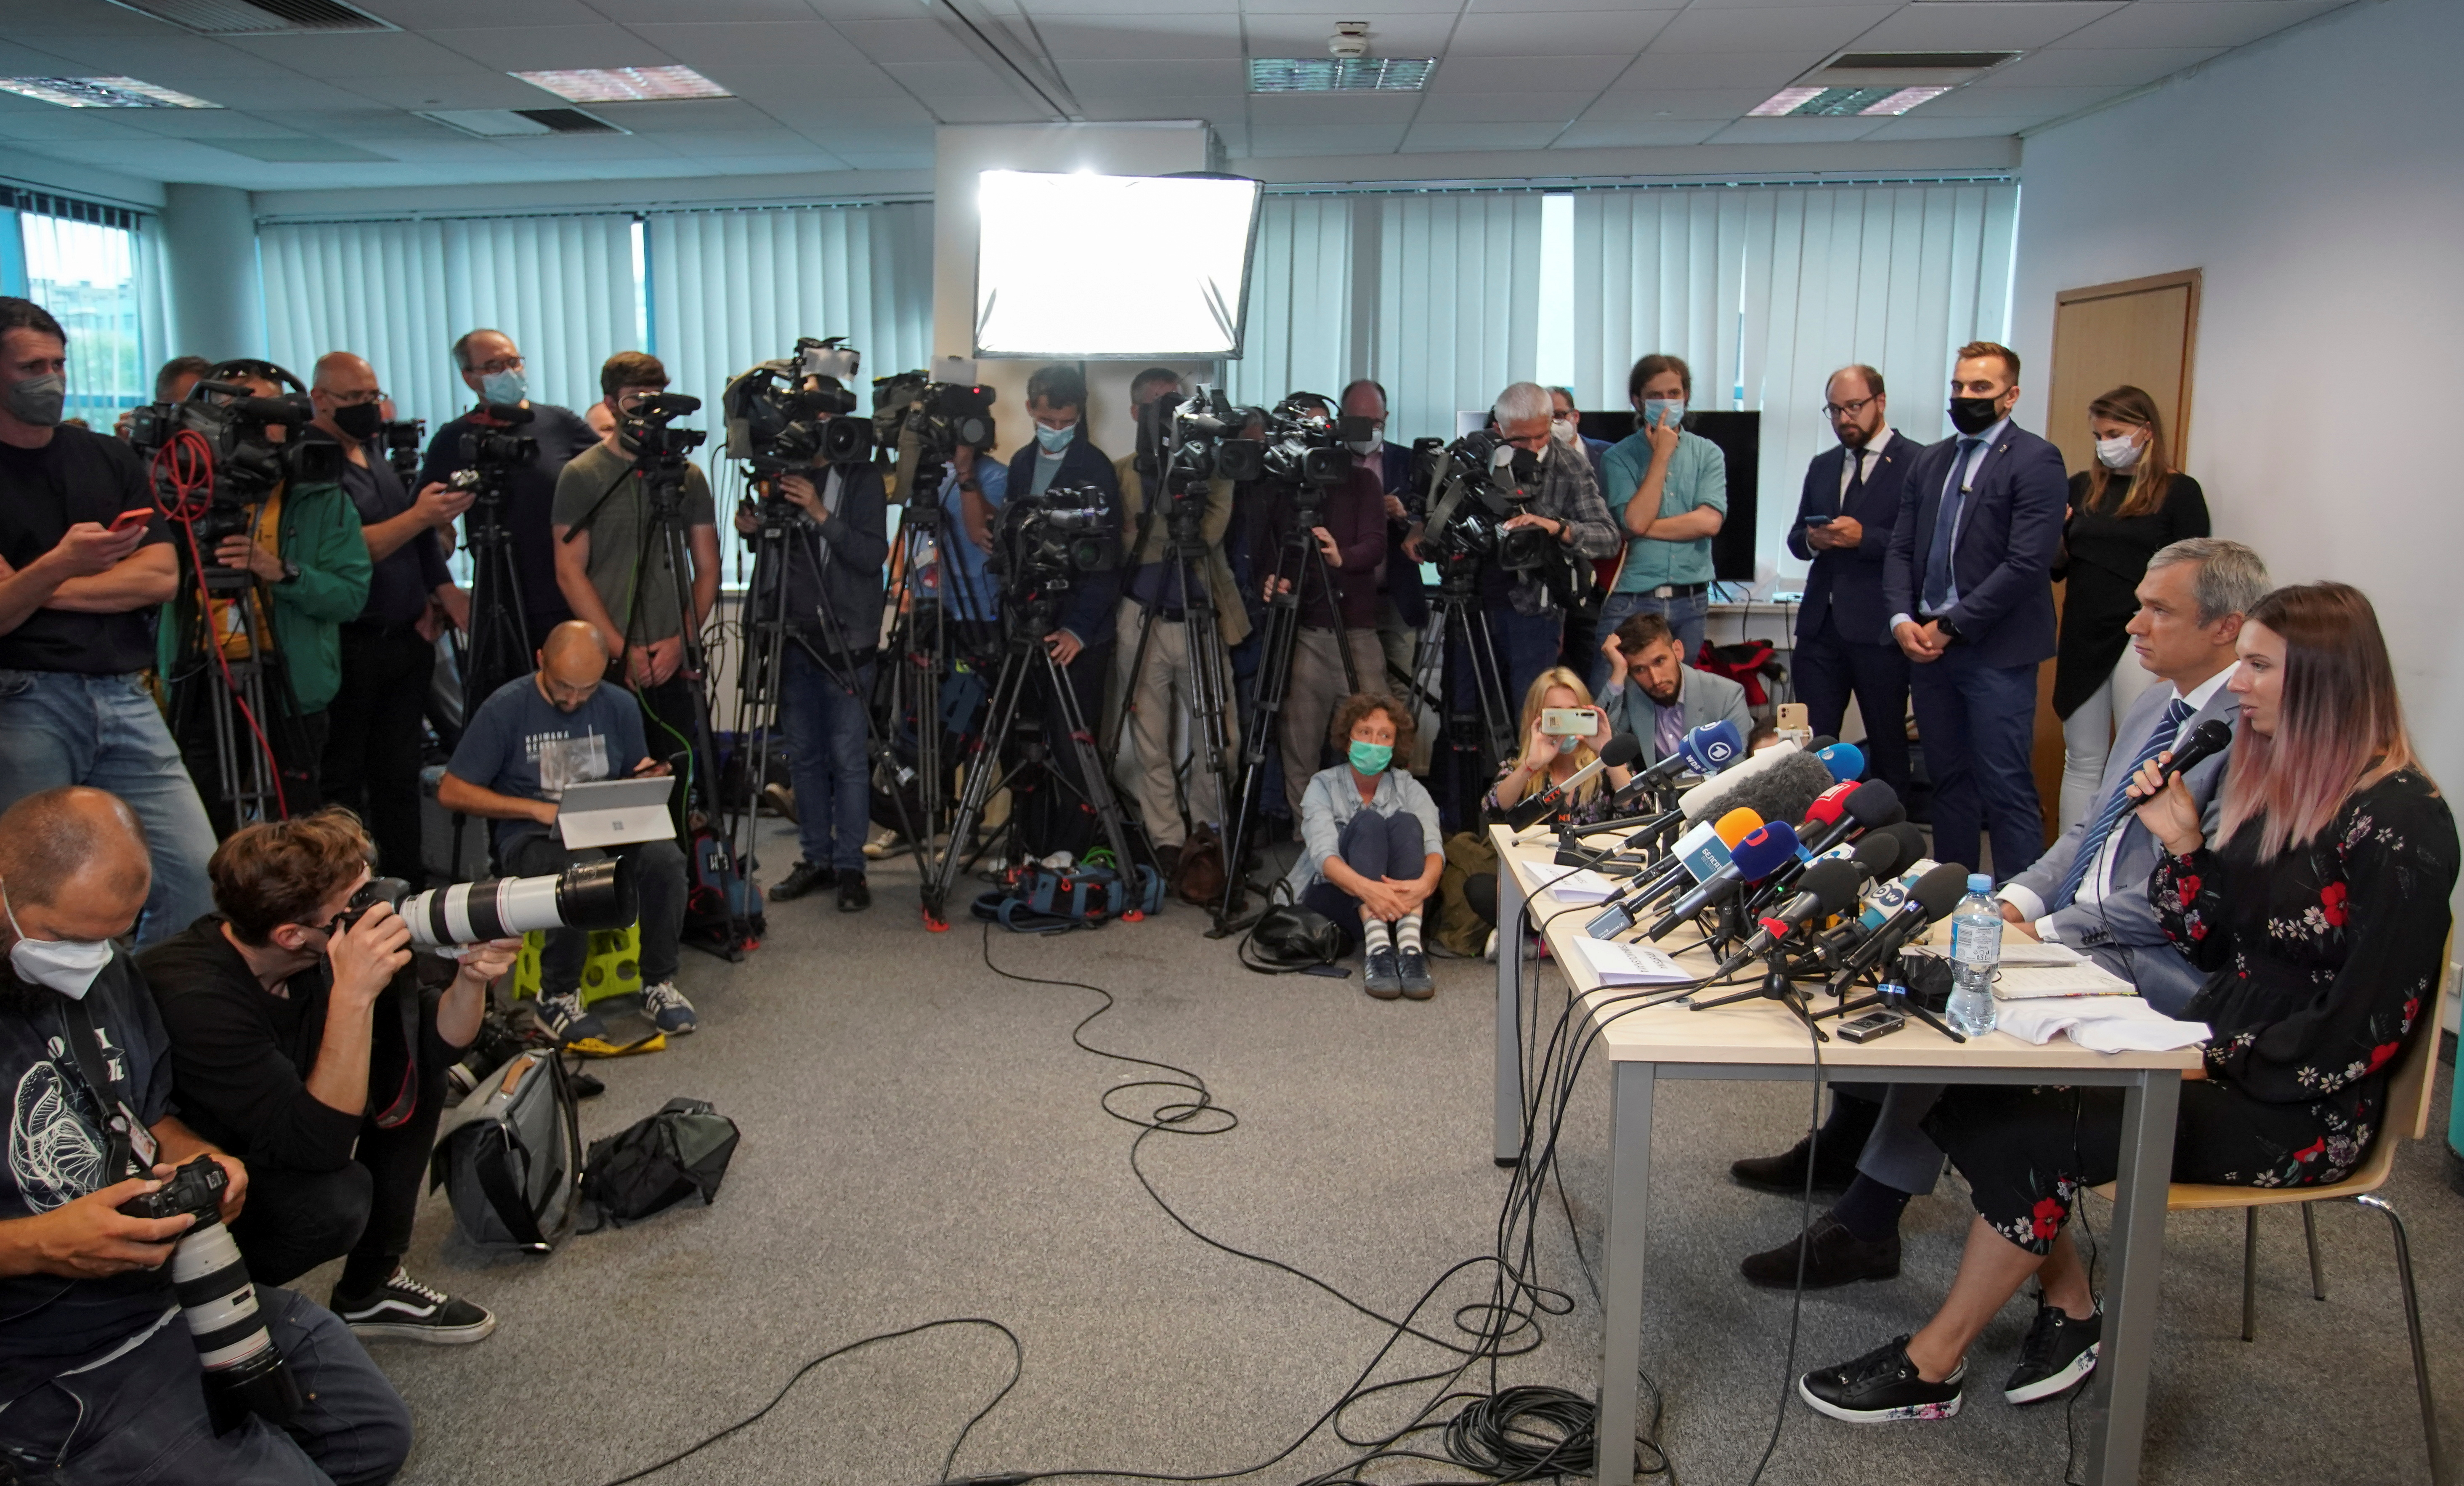 Belarusian sprinter Krystsina Tsimanouskaya, who left the Olympic Games in Tokyo and seeks asylum in Poland, and Belarusian opposition politician Pavel Latushka  attend a news conference in Warsaw, Poland August 5, 2021. REUTERS/Darek Golik